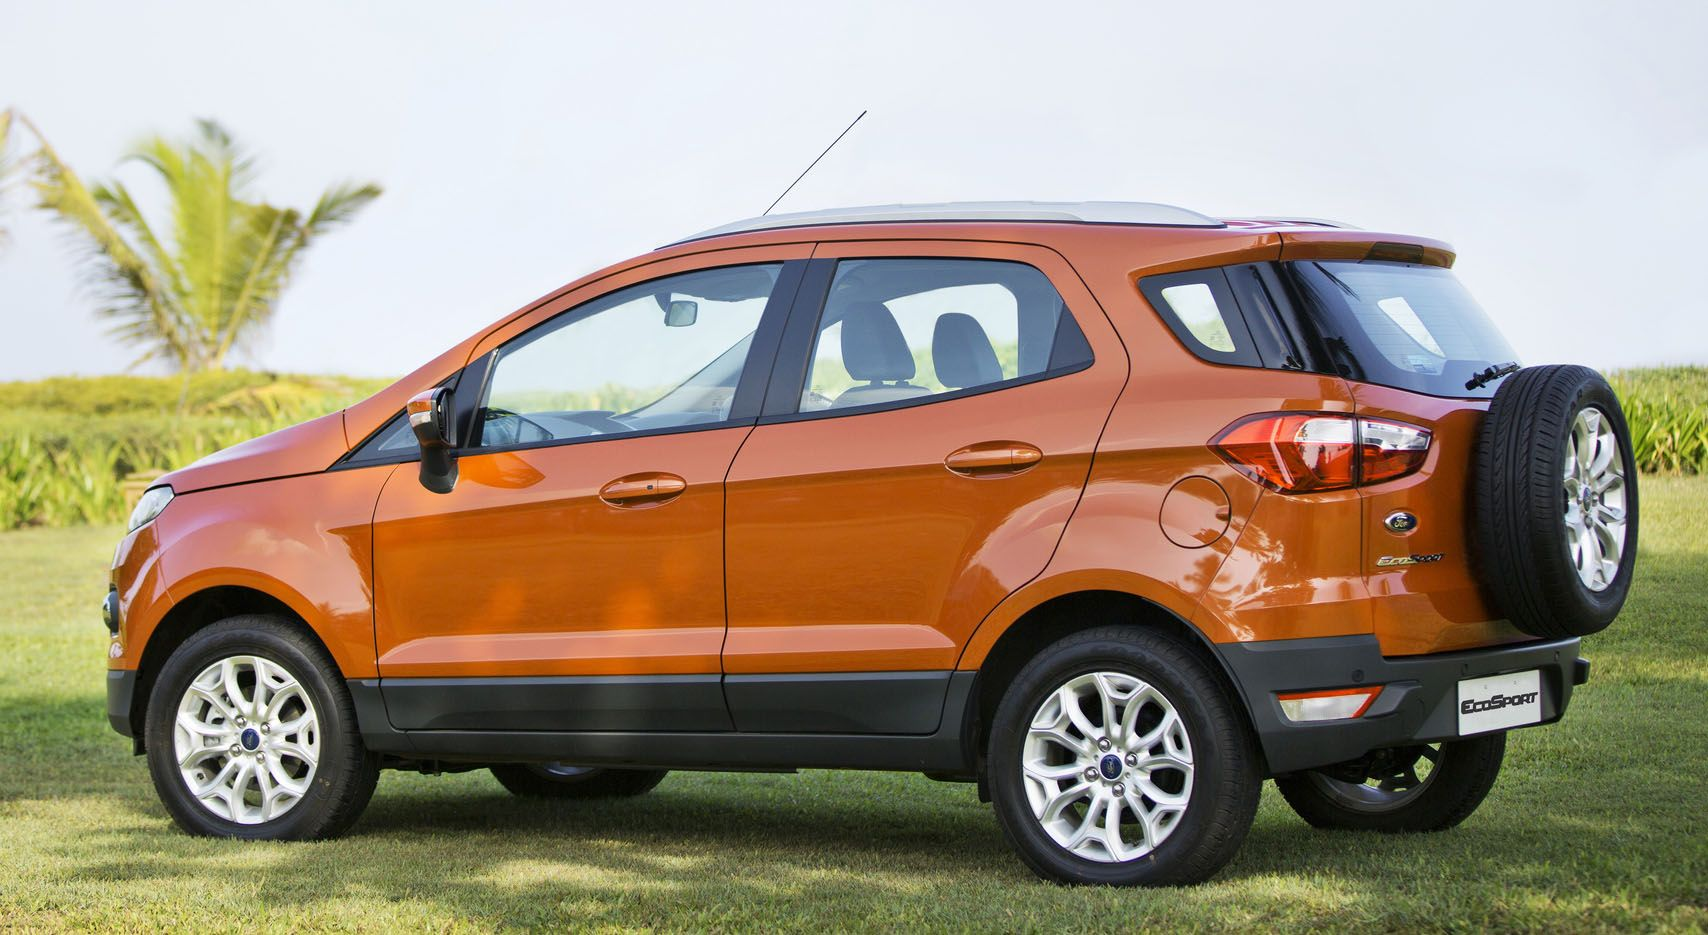 Find All New Ford Cars Listings In India Try Quikrcars To Find